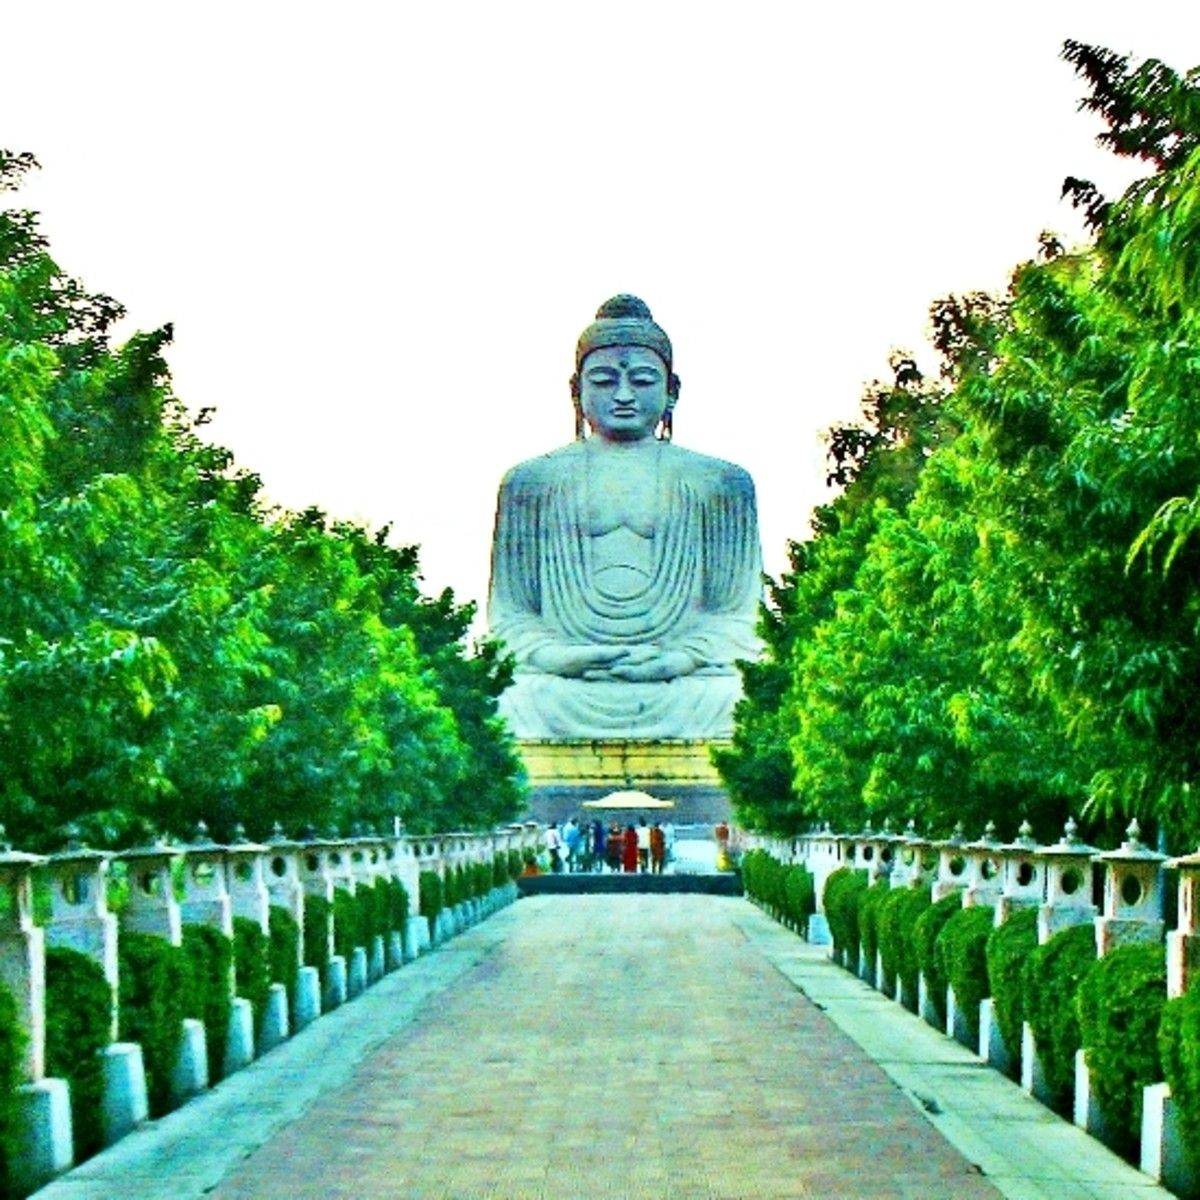 80 ft statue of Buddha in the place where he attained Bodhisatva